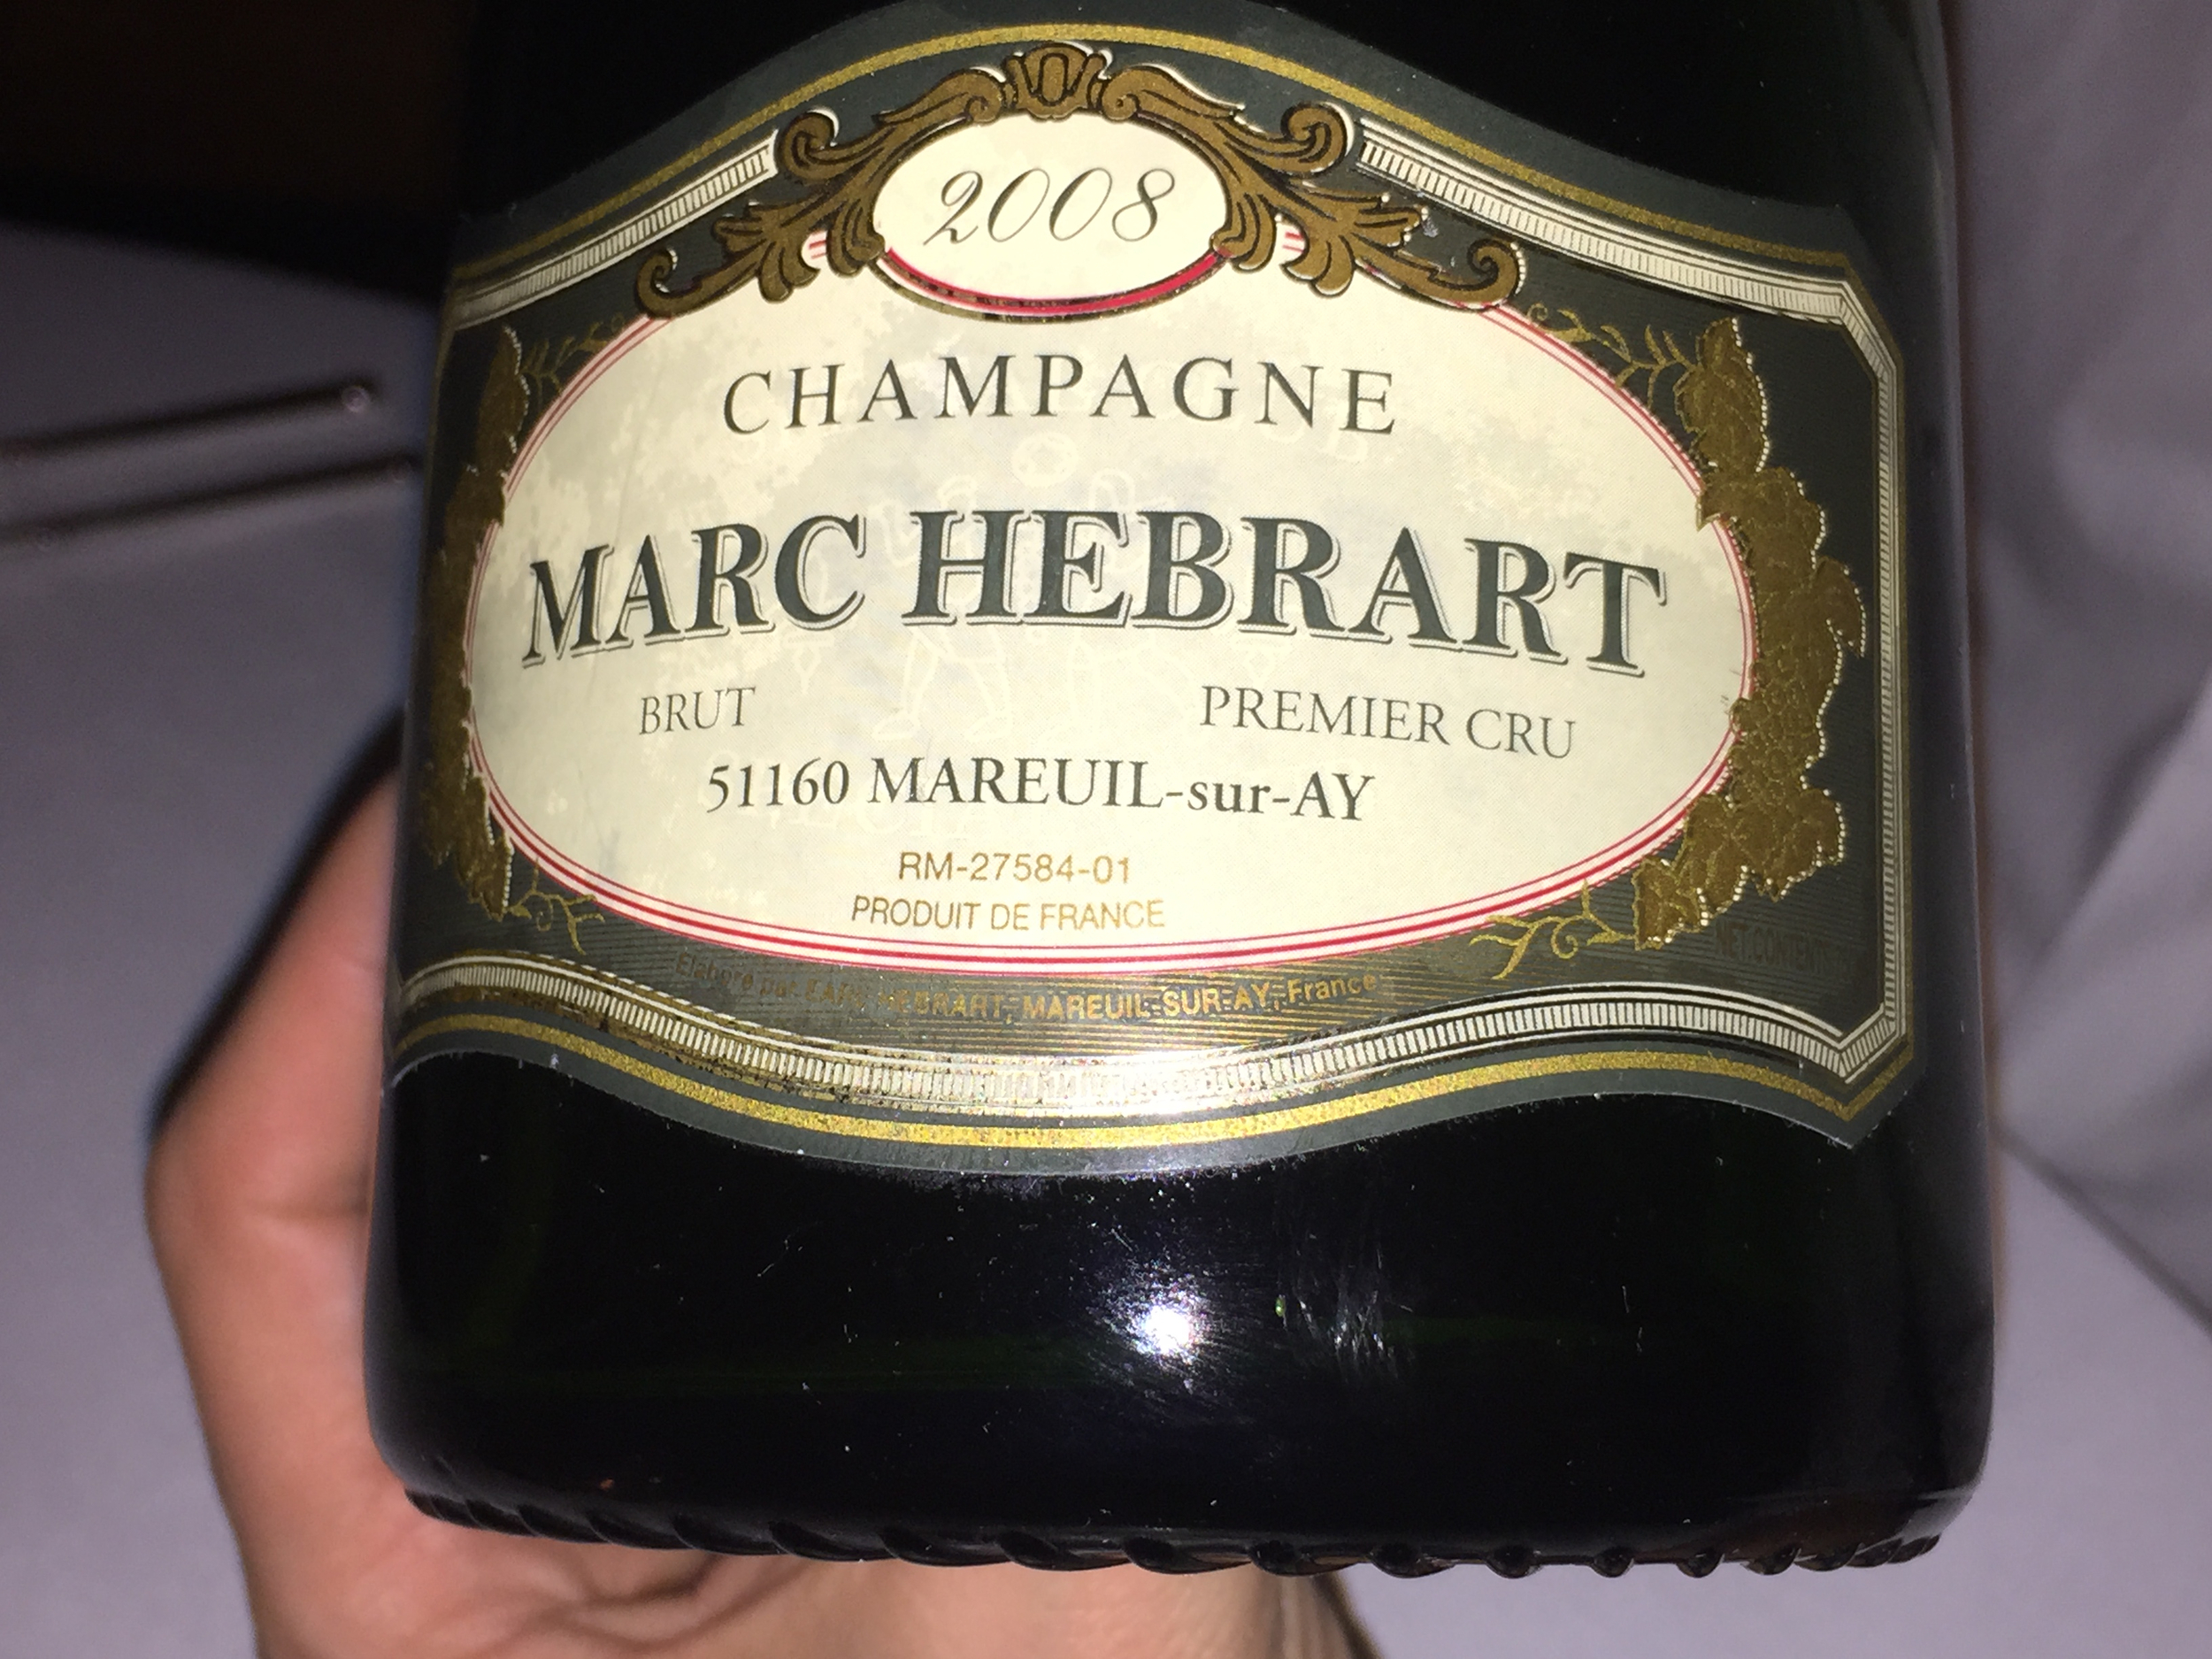 Small producer champagne bottle.jpg